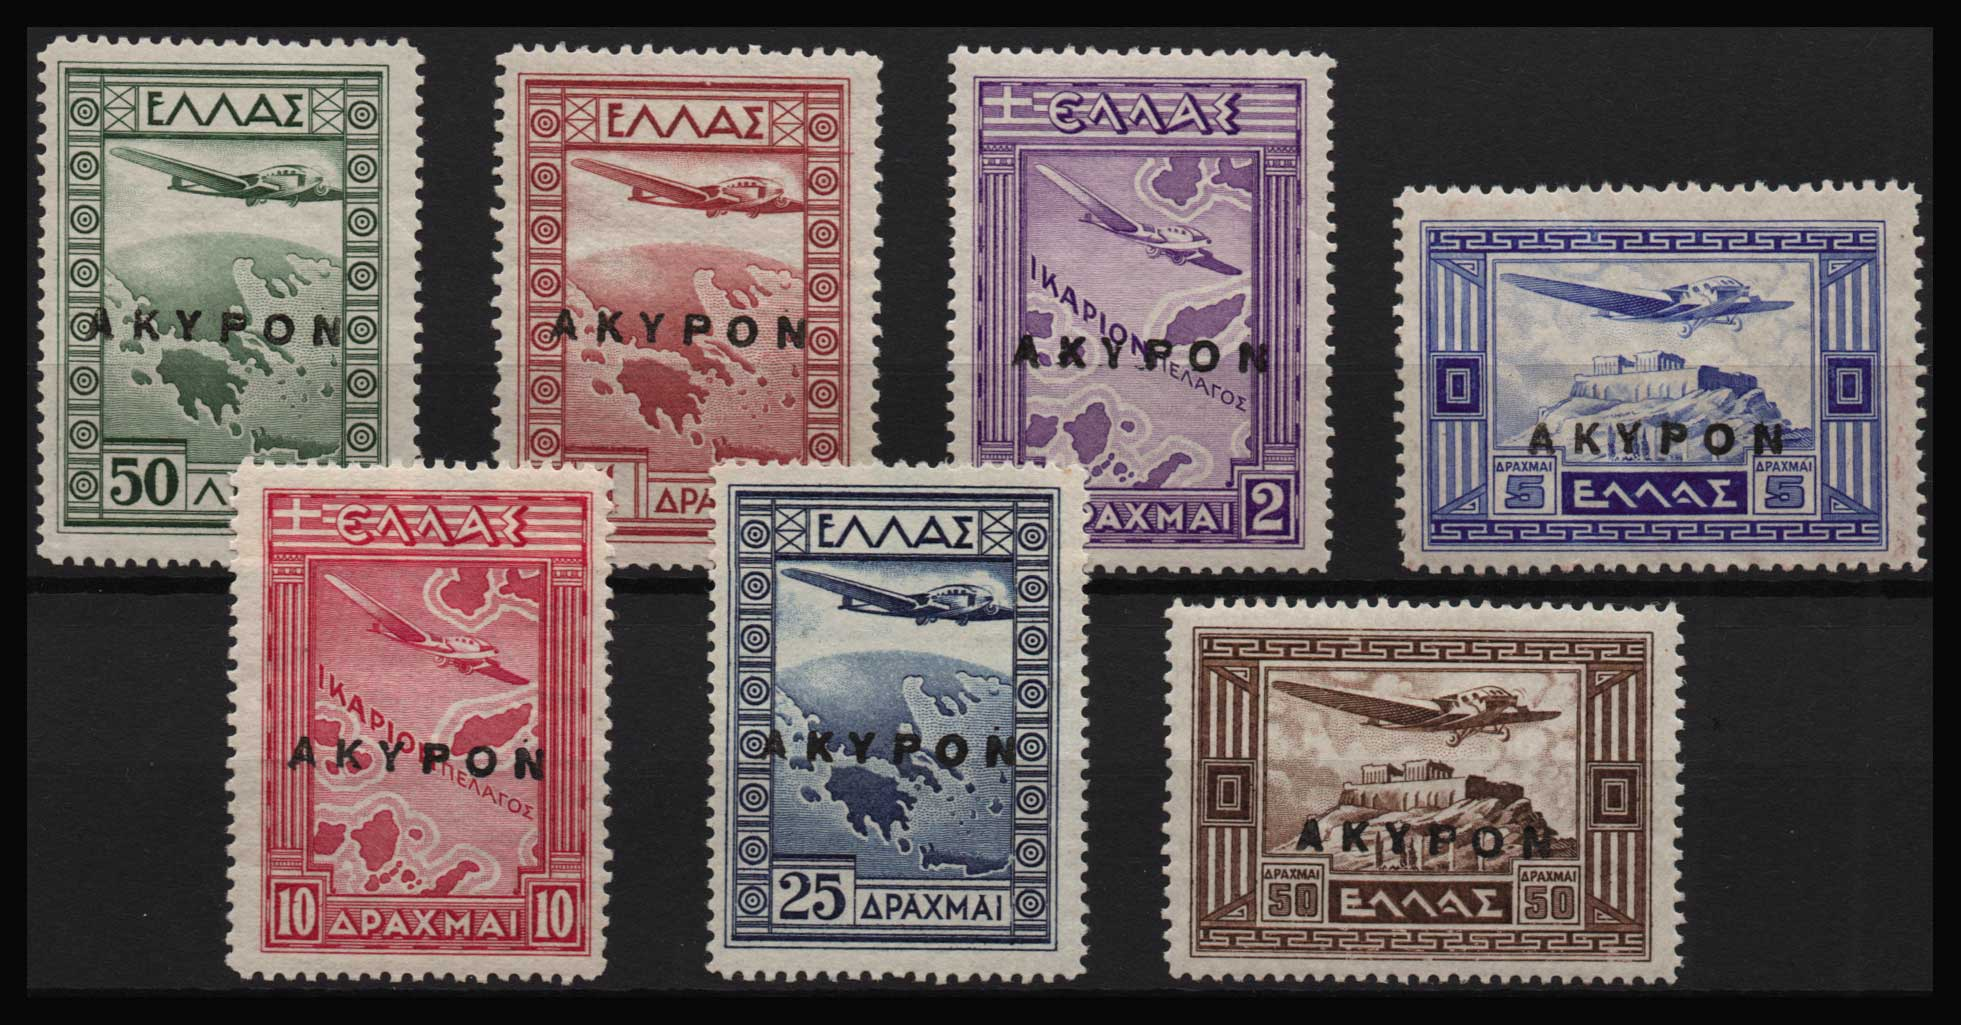 Lot 942 - -  AIR-MAIL ISSUES Air-mail issues -  Athens Auctions Public Auction 86 General Stamp Sale